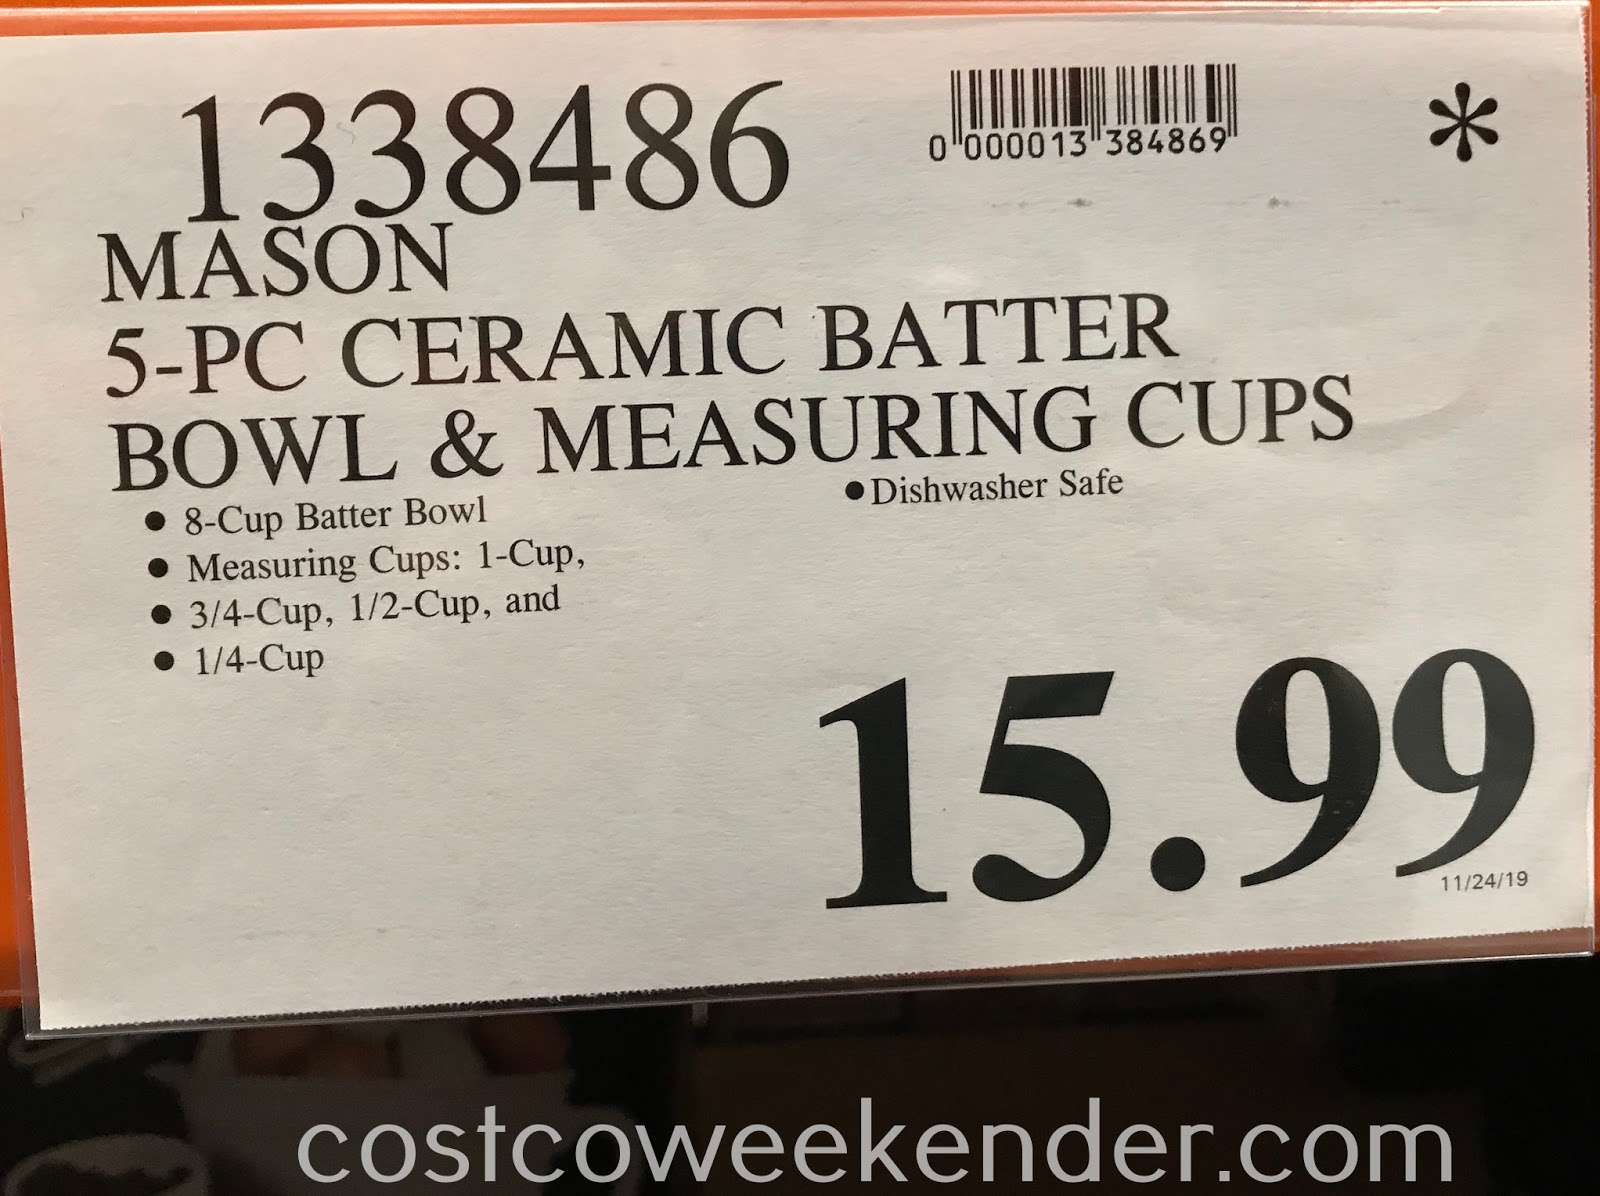 Deal for the Mason 5-piece Ceramic Batter Bowl and Measuring Cup Set at Costco